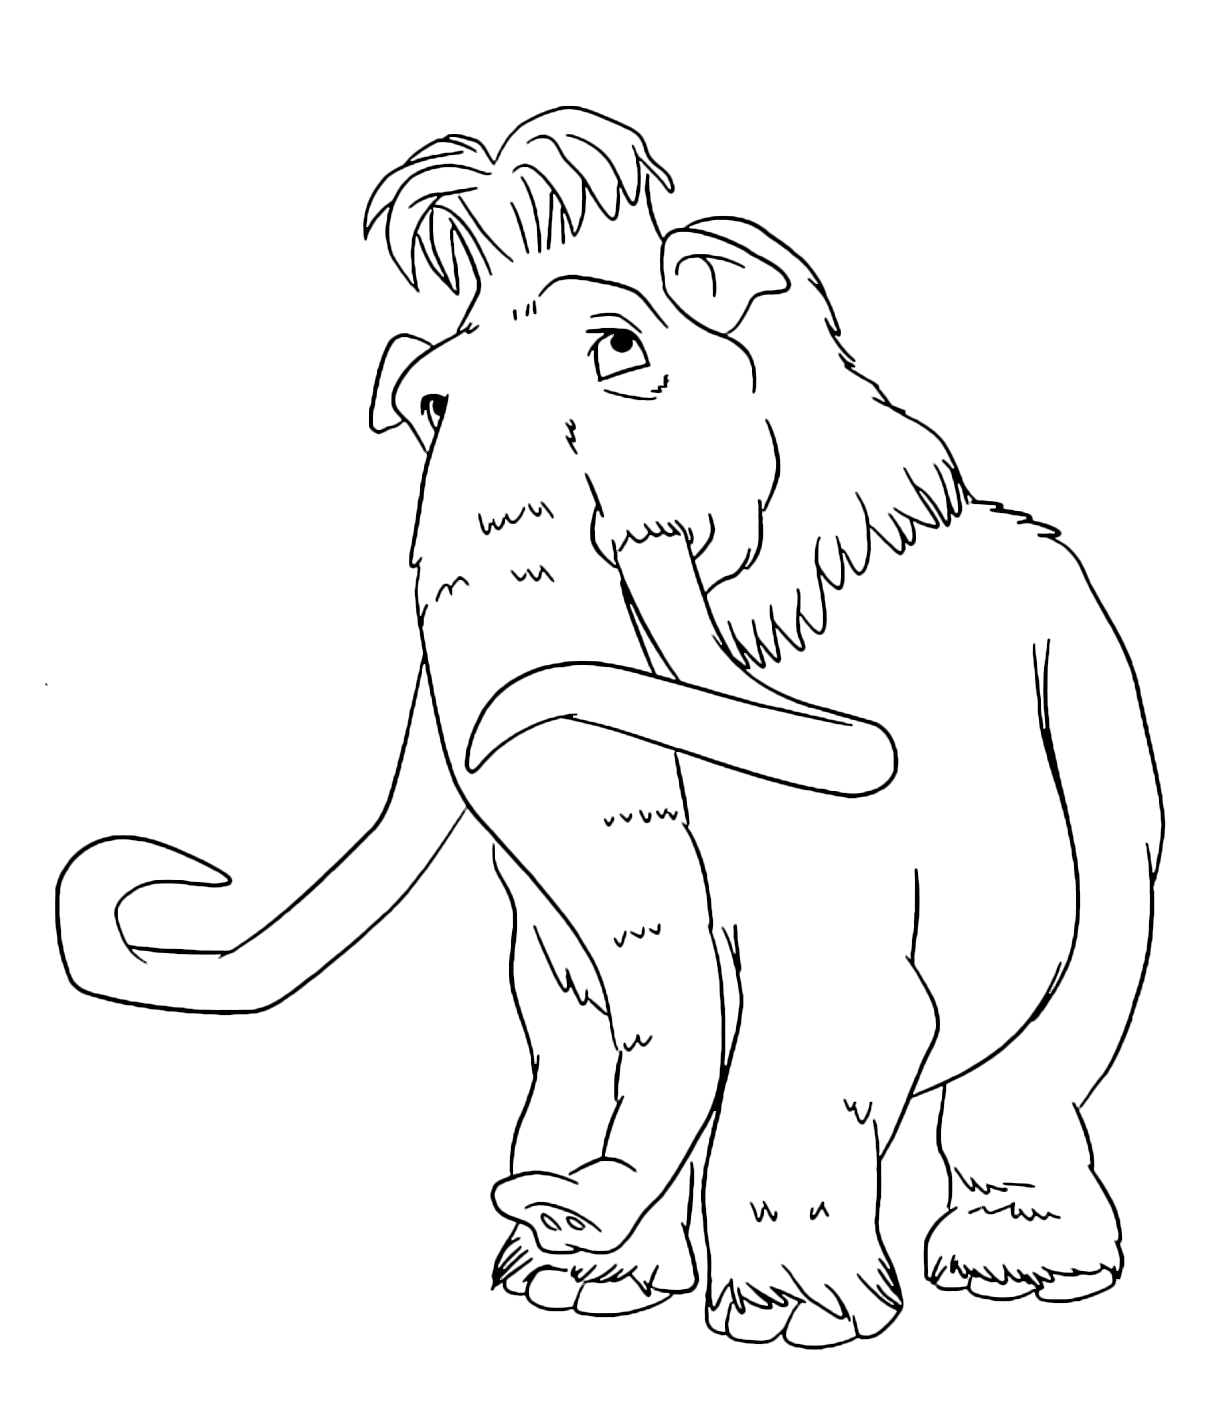 Ice Age - Ellie is Manny's mammoth girlfriend